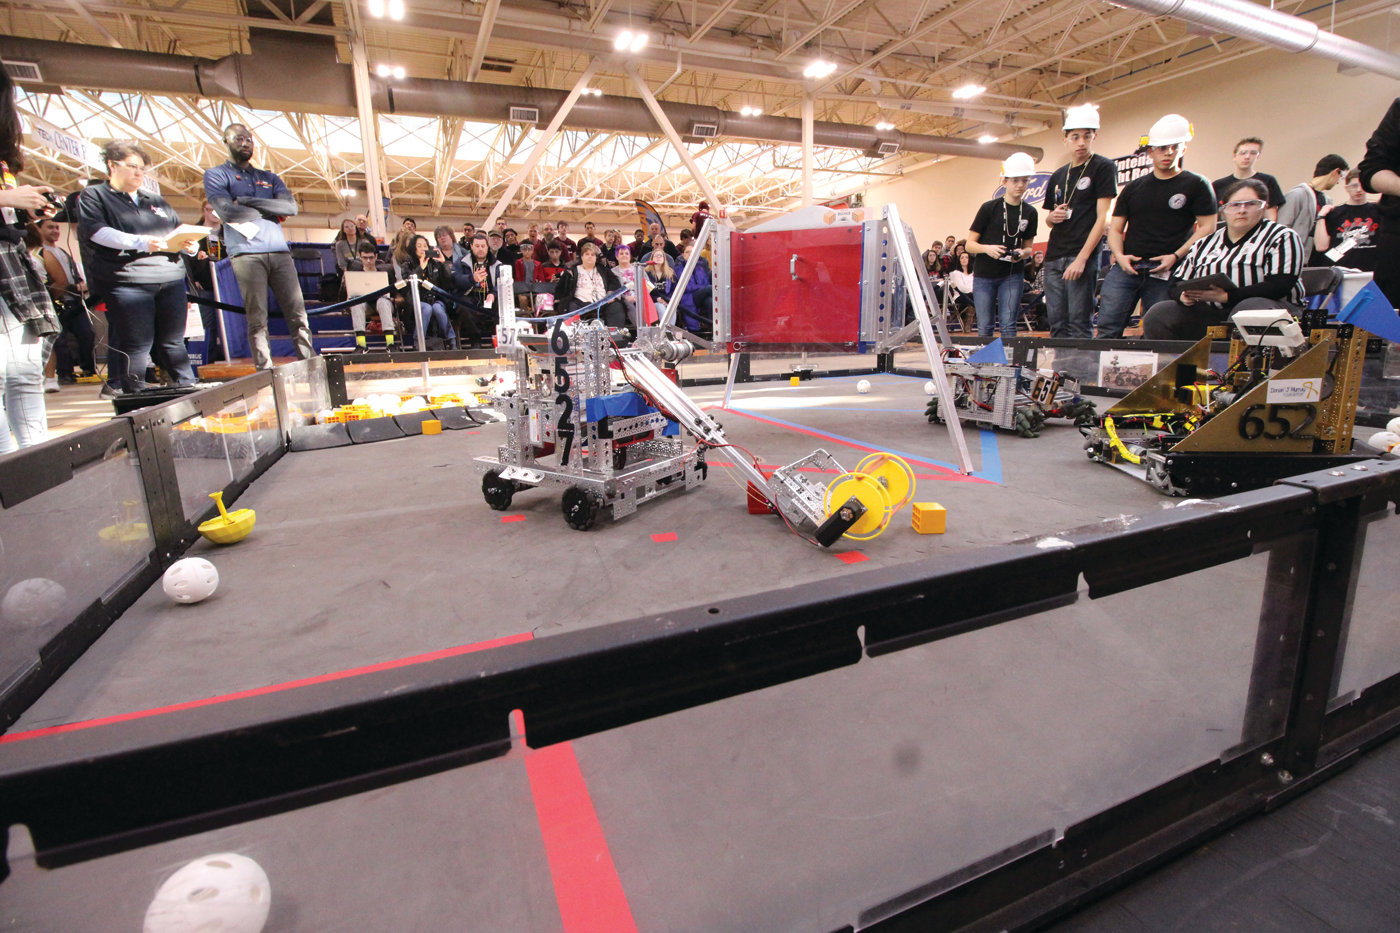 IN THE RING: Competing robots scramble to complete tasks and win points during Saturday's FIRST Tech Challenge held at the NEIT Center for Automotive Technology.